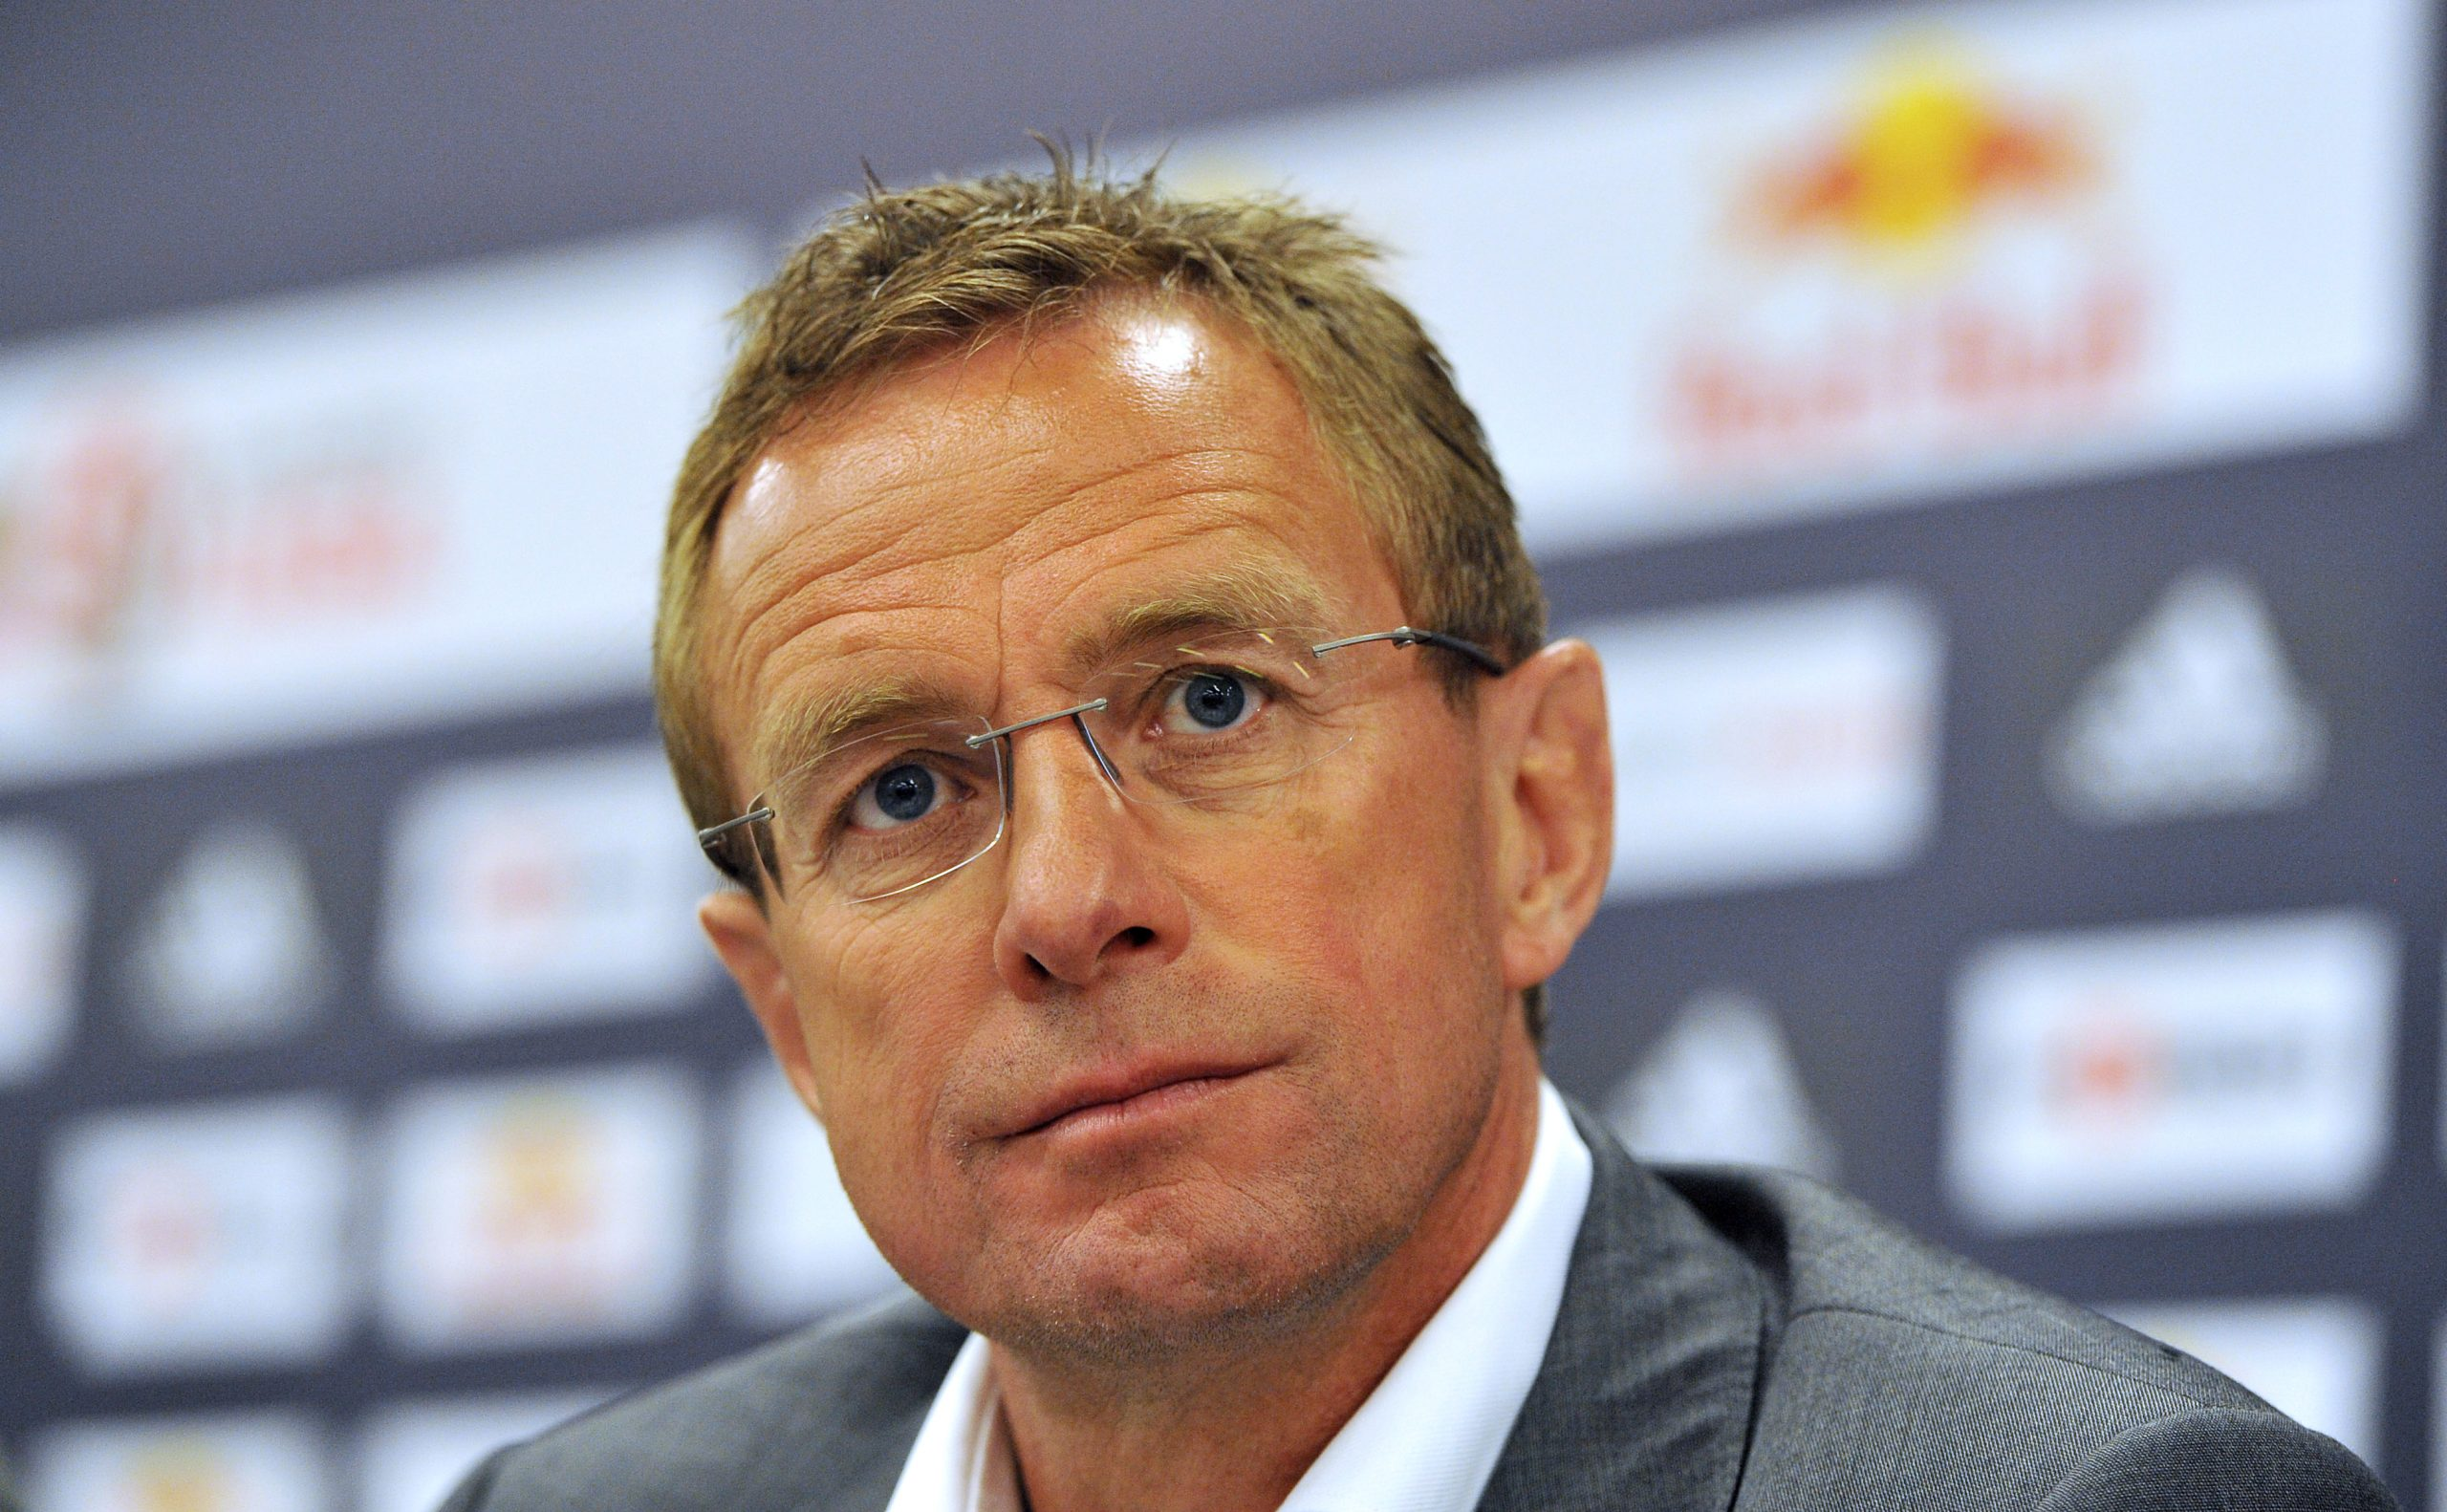 Ralf Rangnick was linked with a managerial role at Chelsea. (GETTY Images)